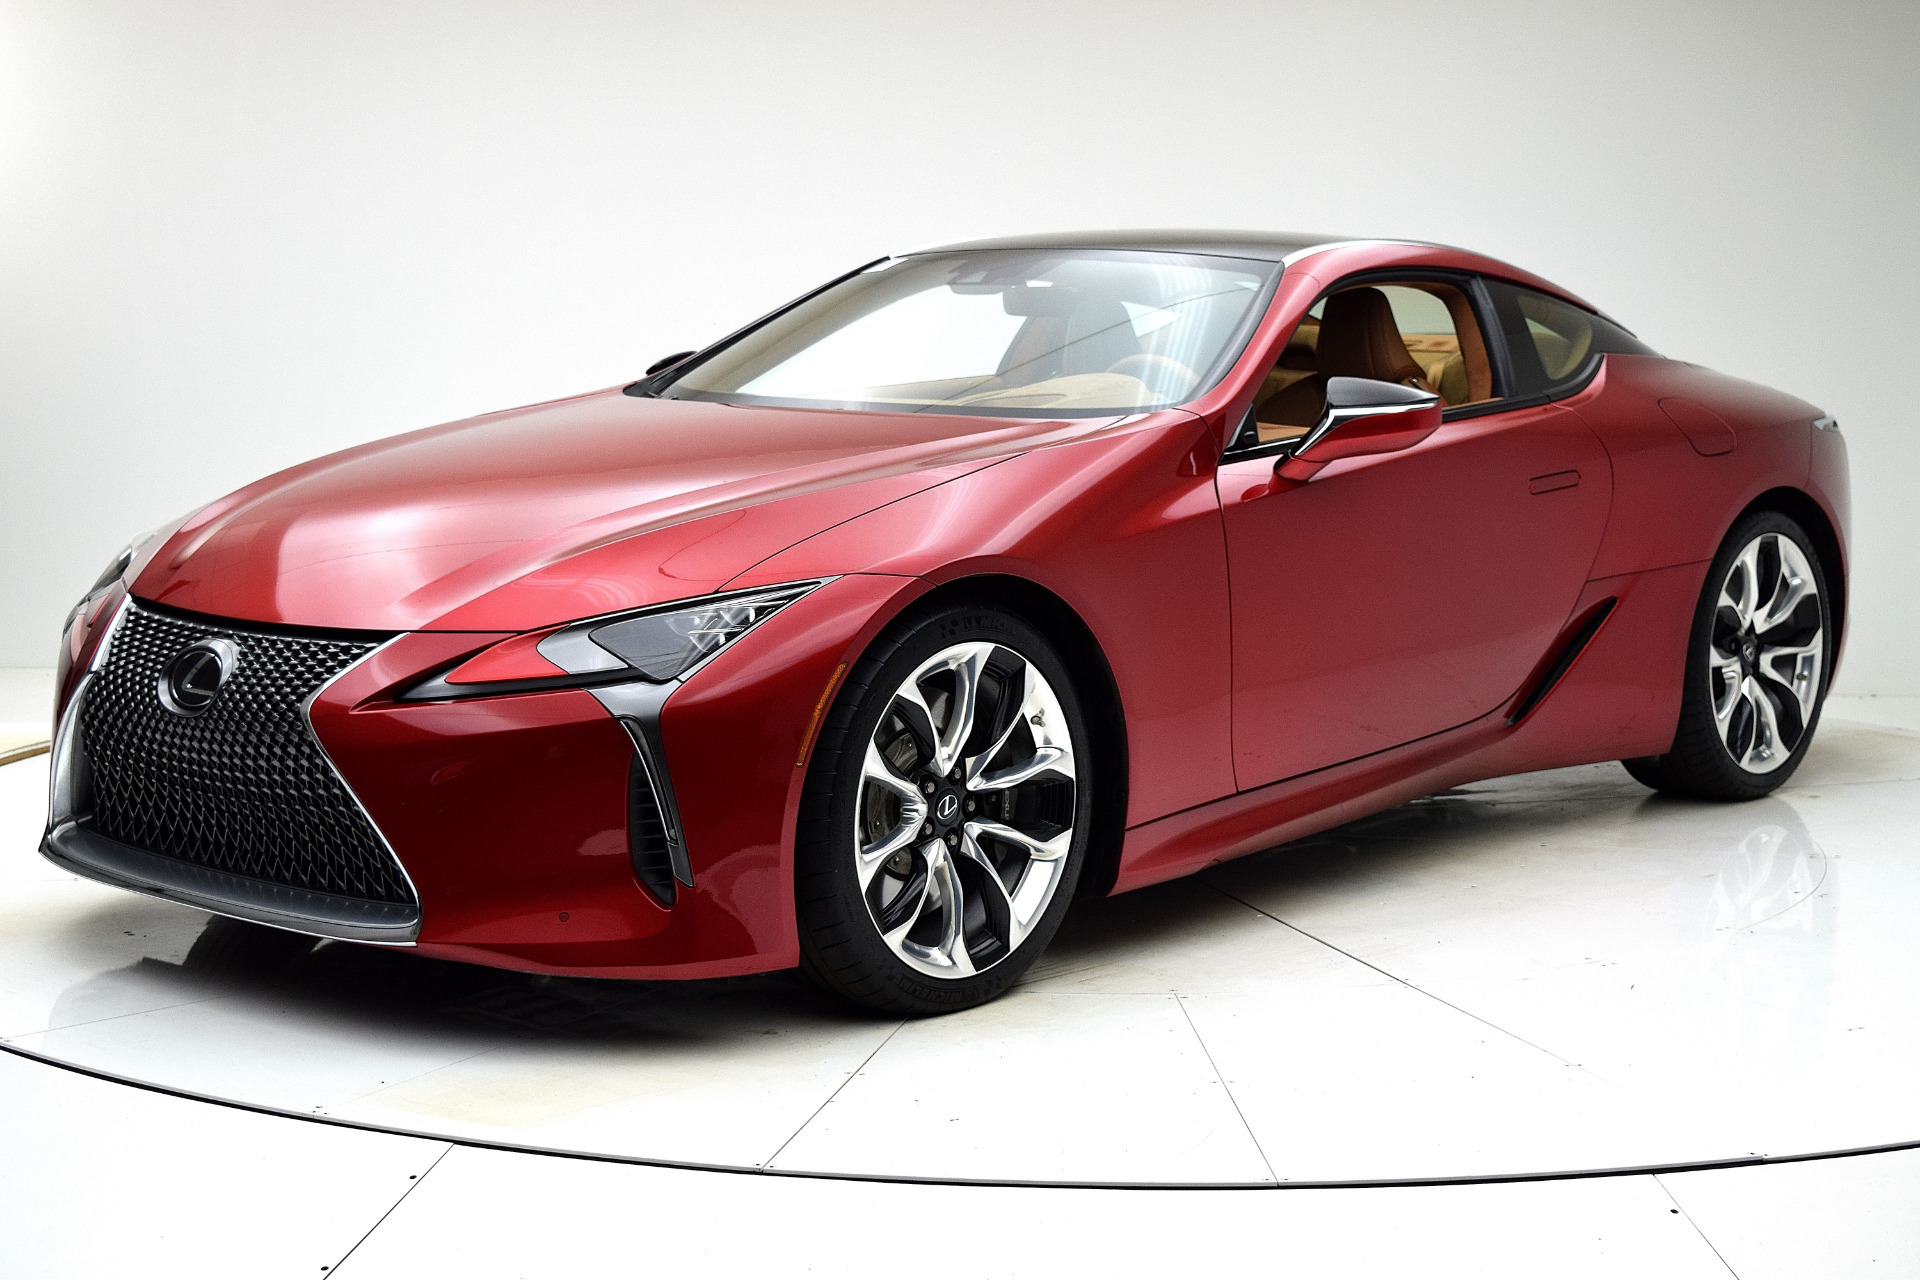 Used 2018 Lexus LC LC 500 for sale Sold at F.C. Kerbeck Aston Martin in Palmyra NJ 08065 2